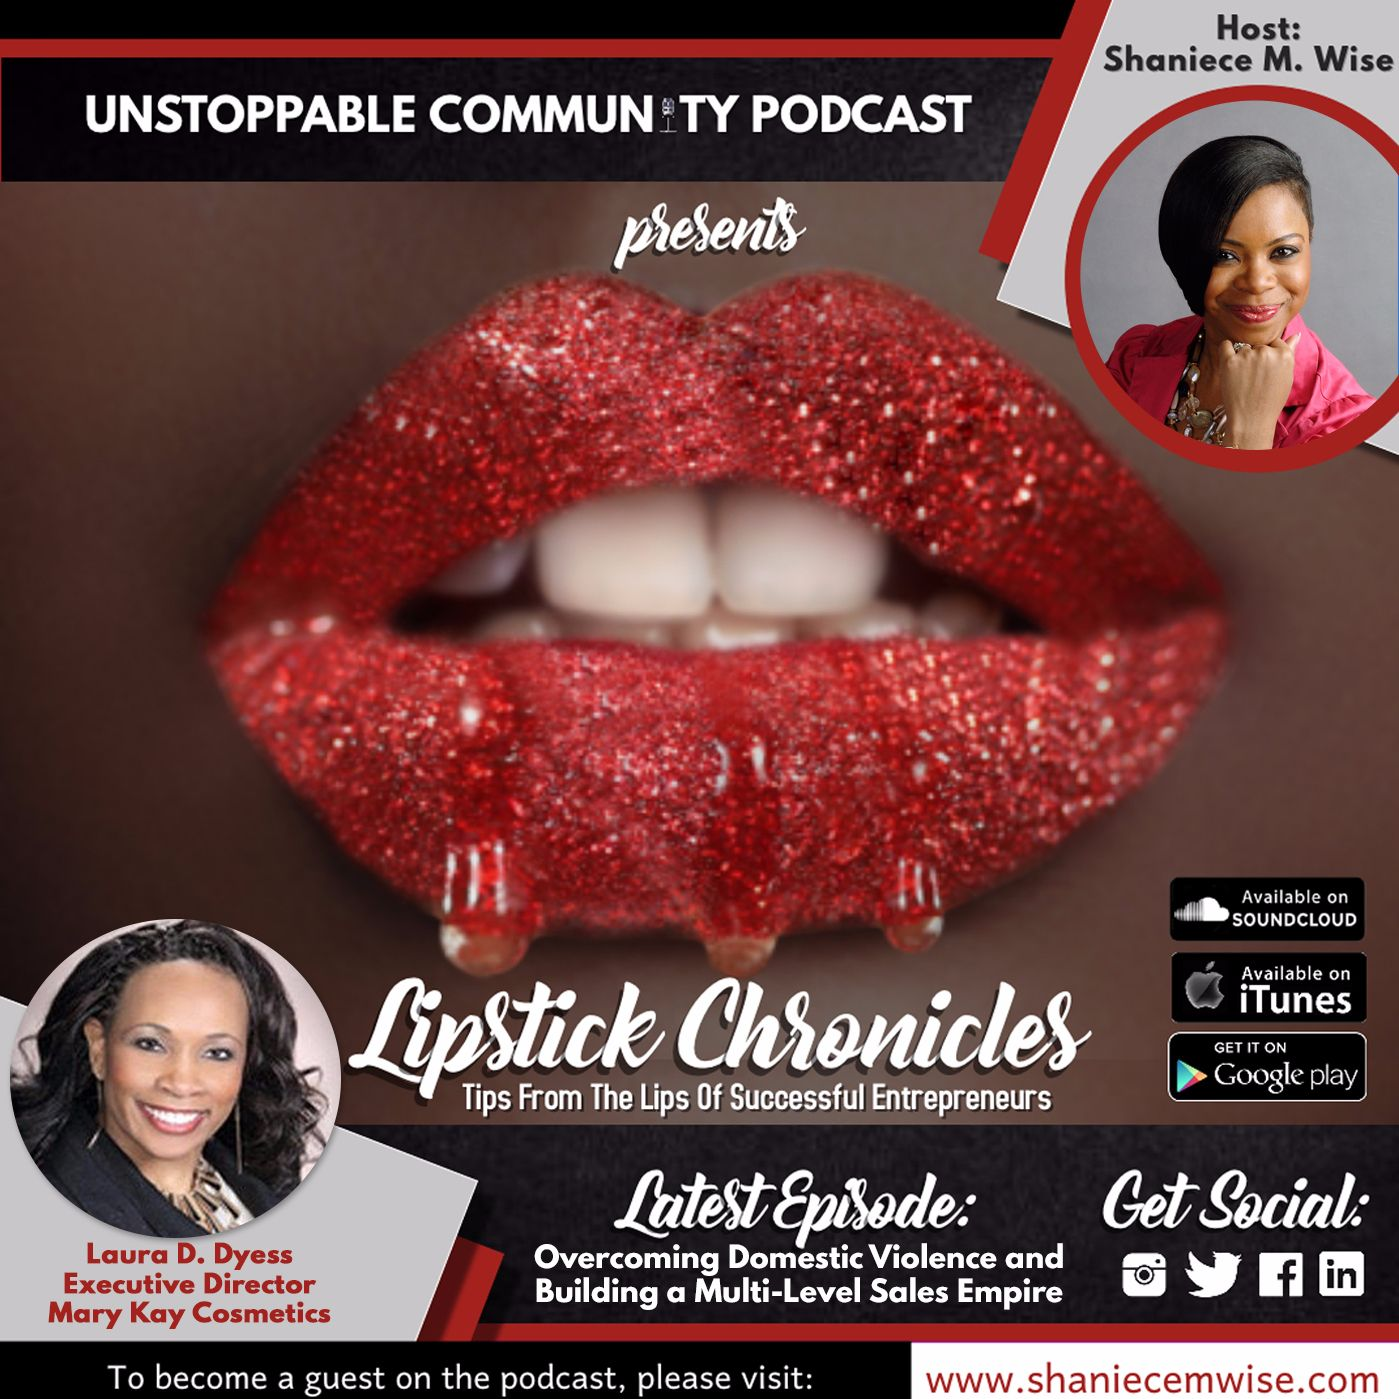 Red Lipstick Chronicles: Tips From The Lips Of Successful Entrepreneurs Season 1, Episode 1